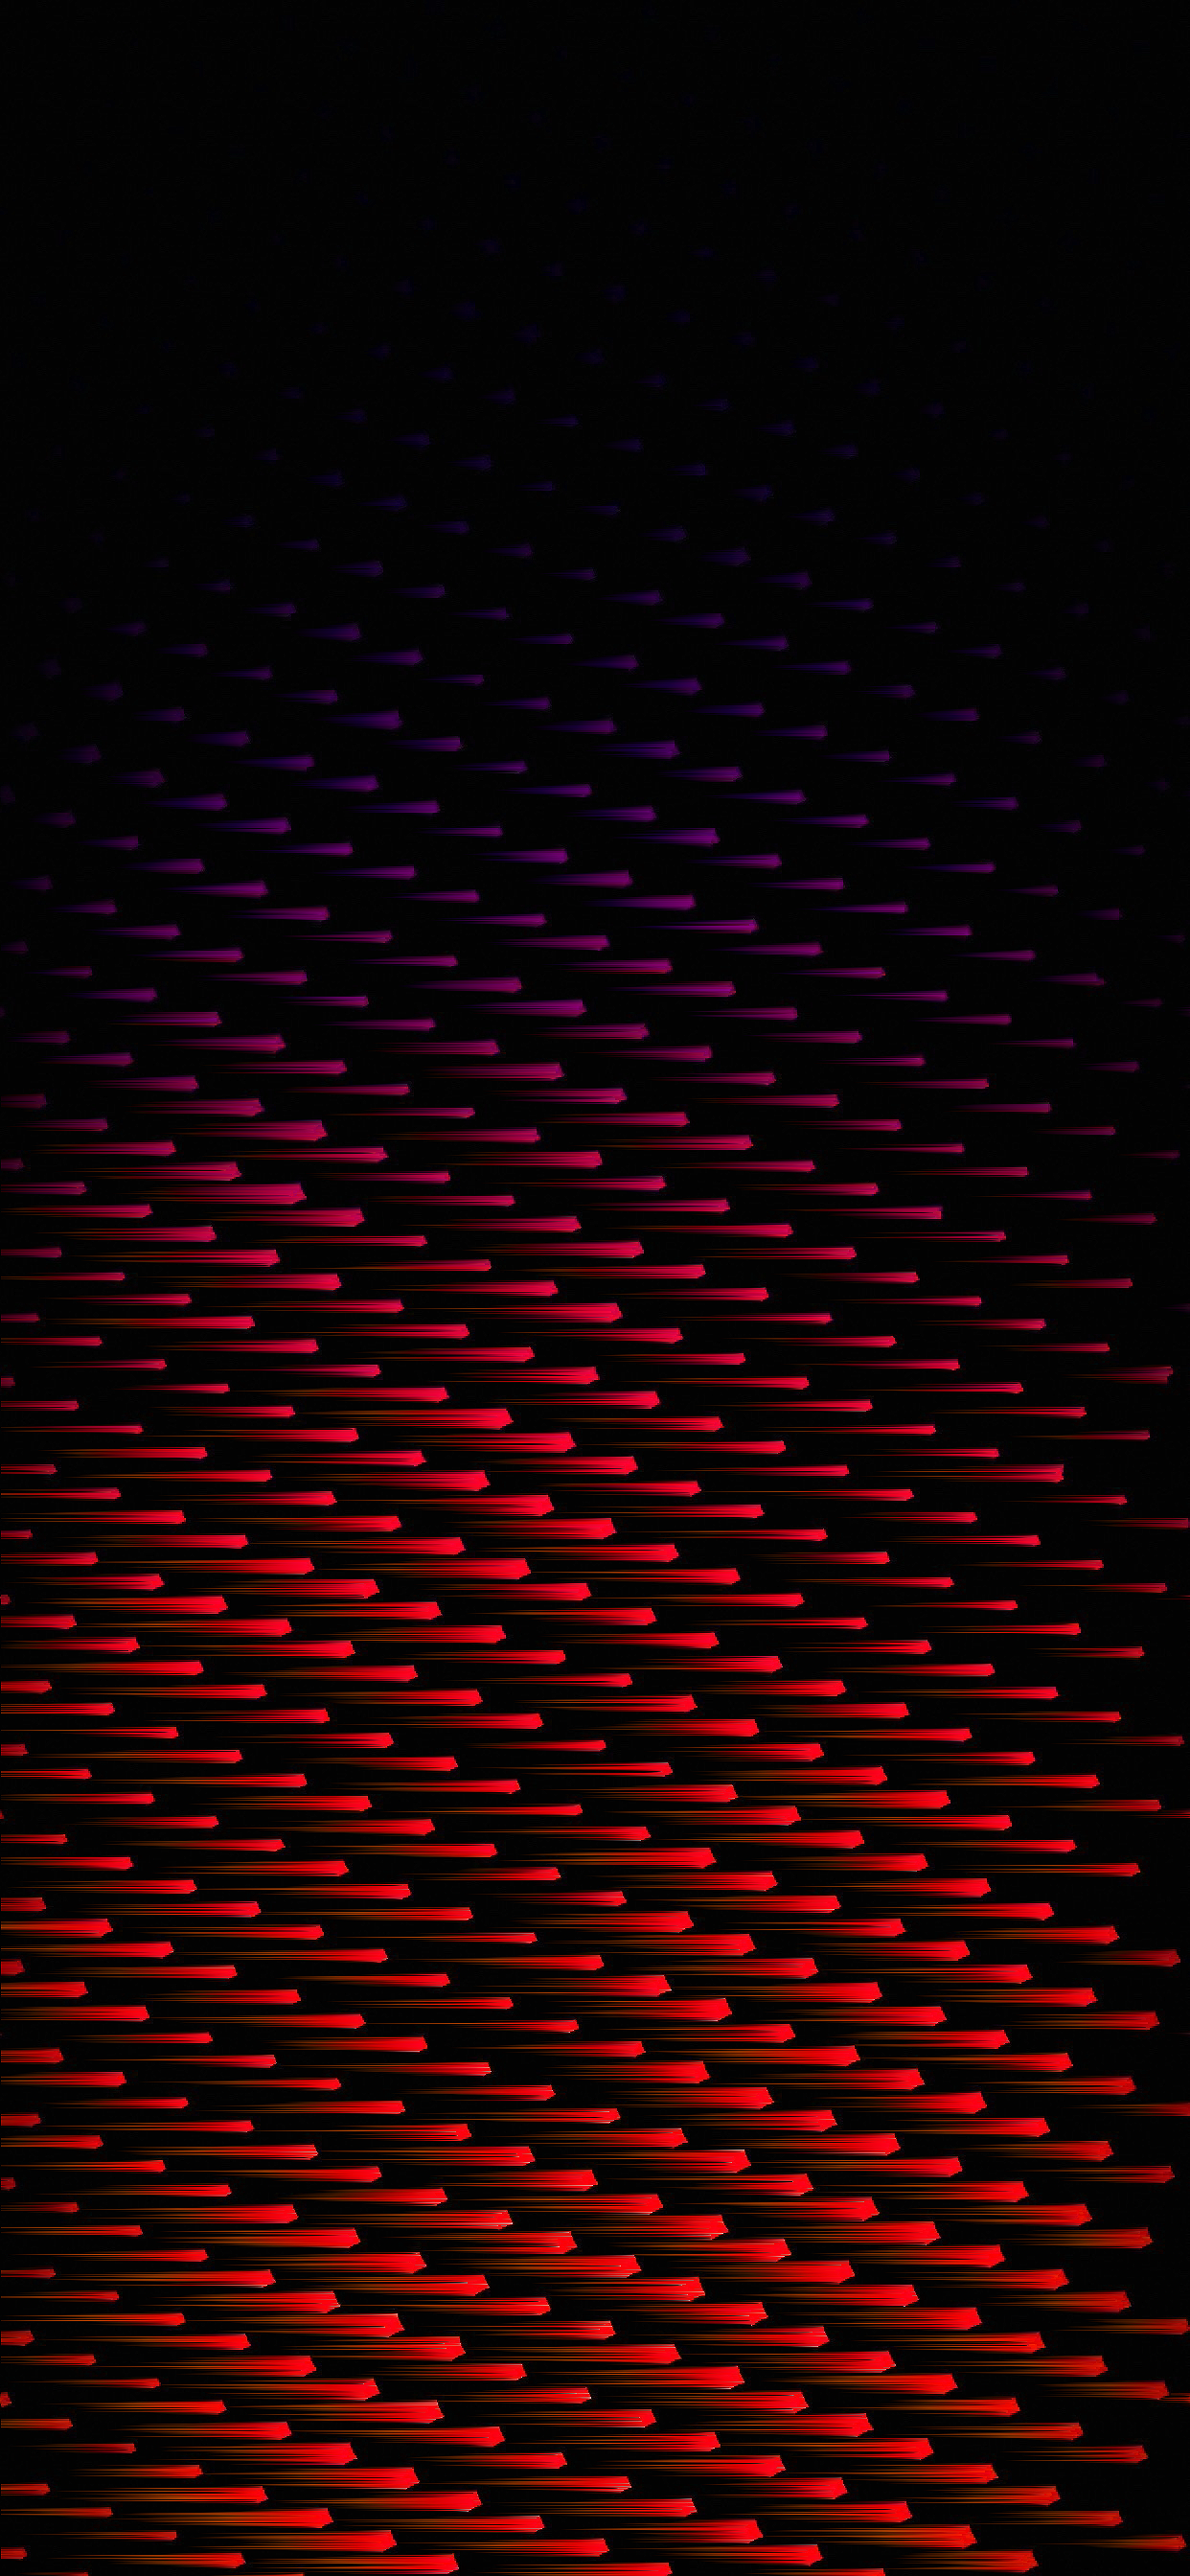 iPhone wallpaper texture colors red Fonds d'écran iPhone du 27/03/2019